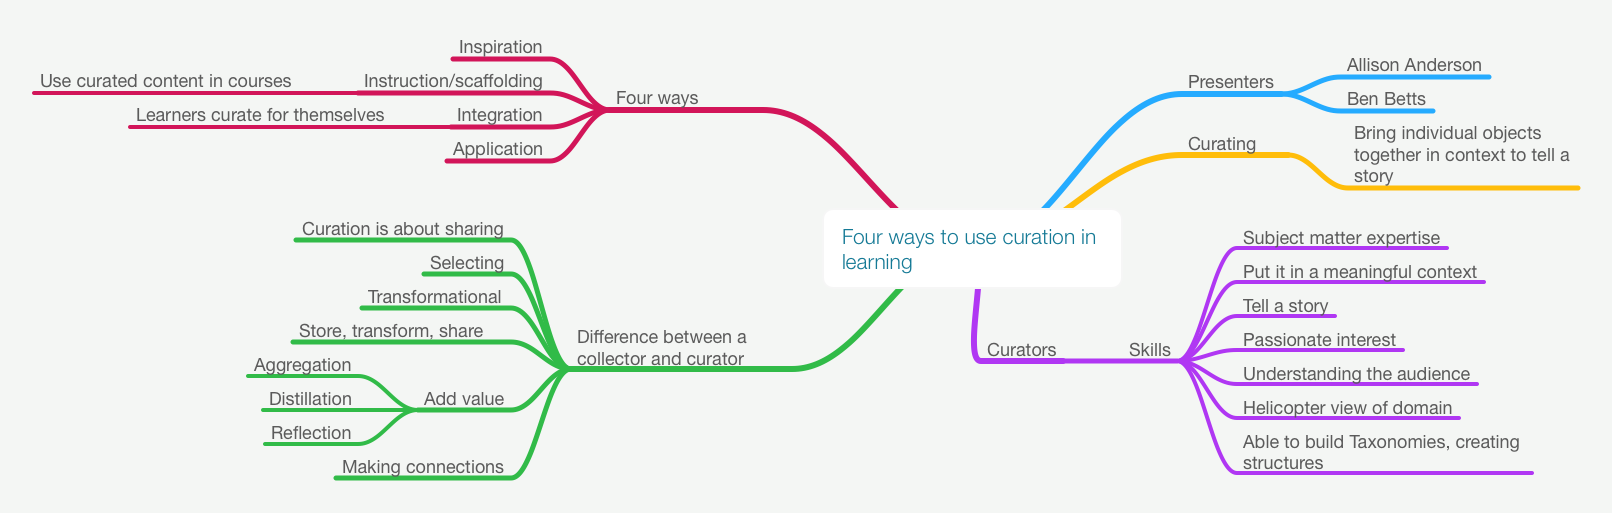 Four ways to use curation in learning